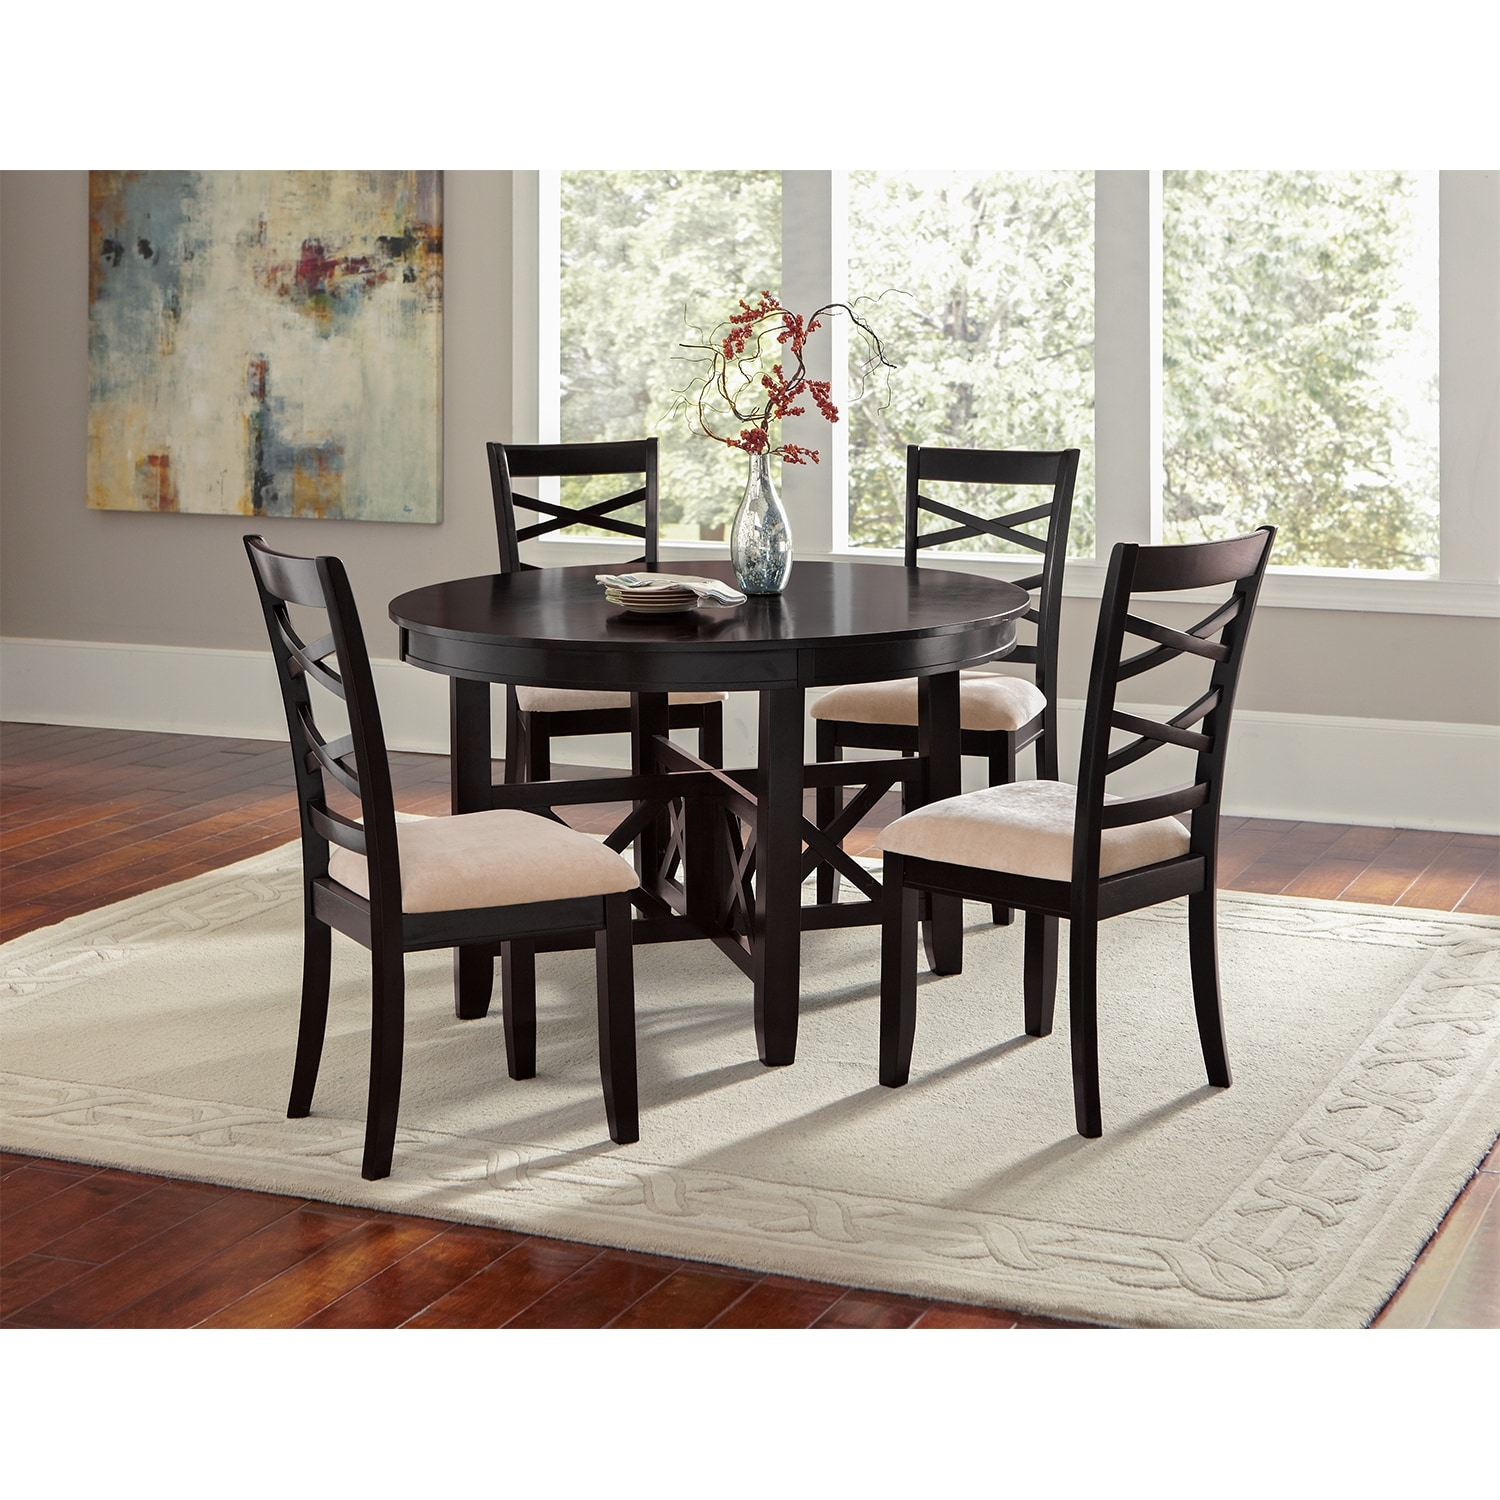 Americana dining room side chair value city furniture for Dining area furniture